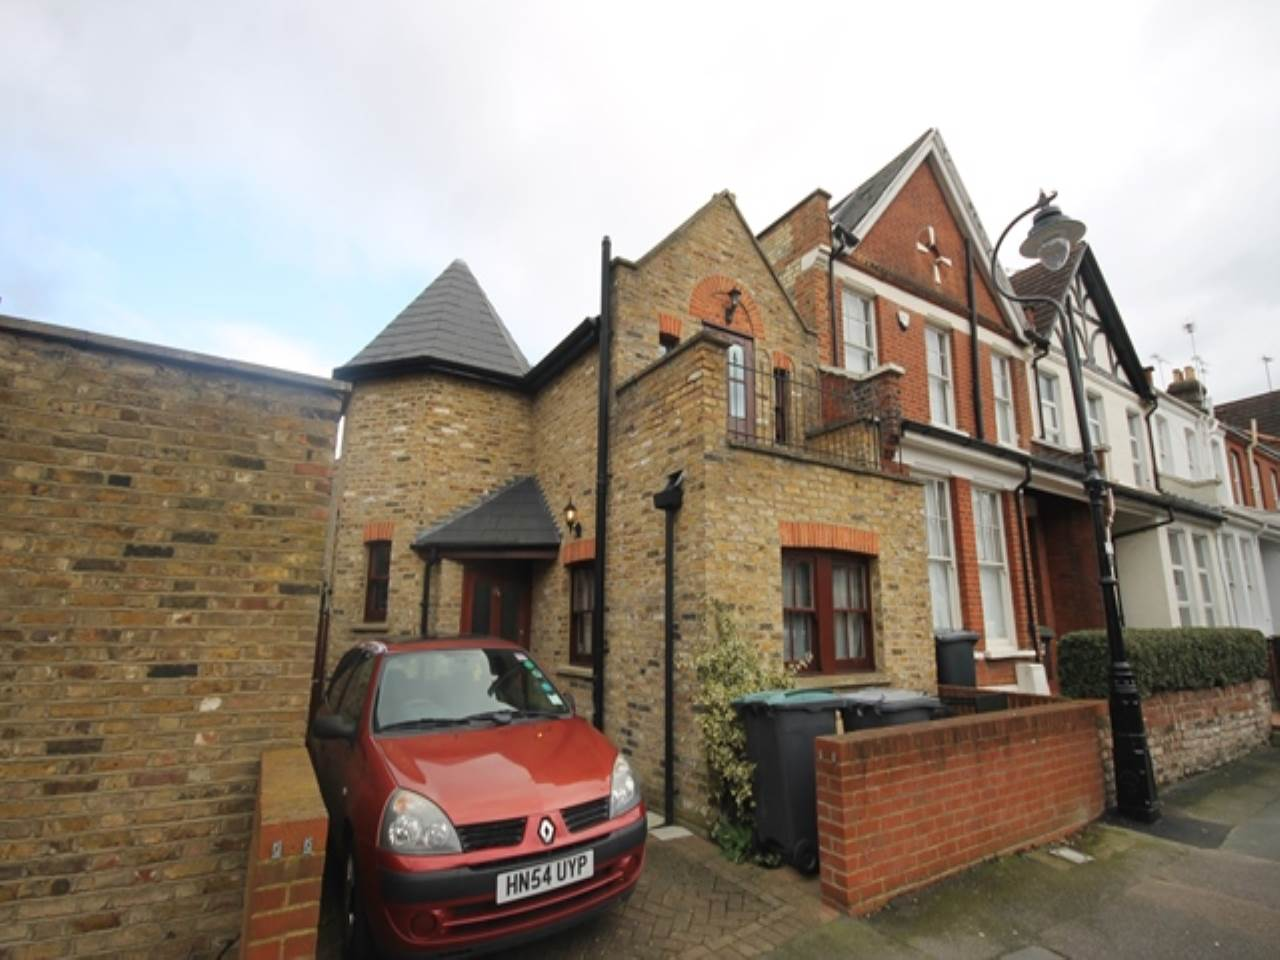 2 bed house to rent in Crouch End, N8